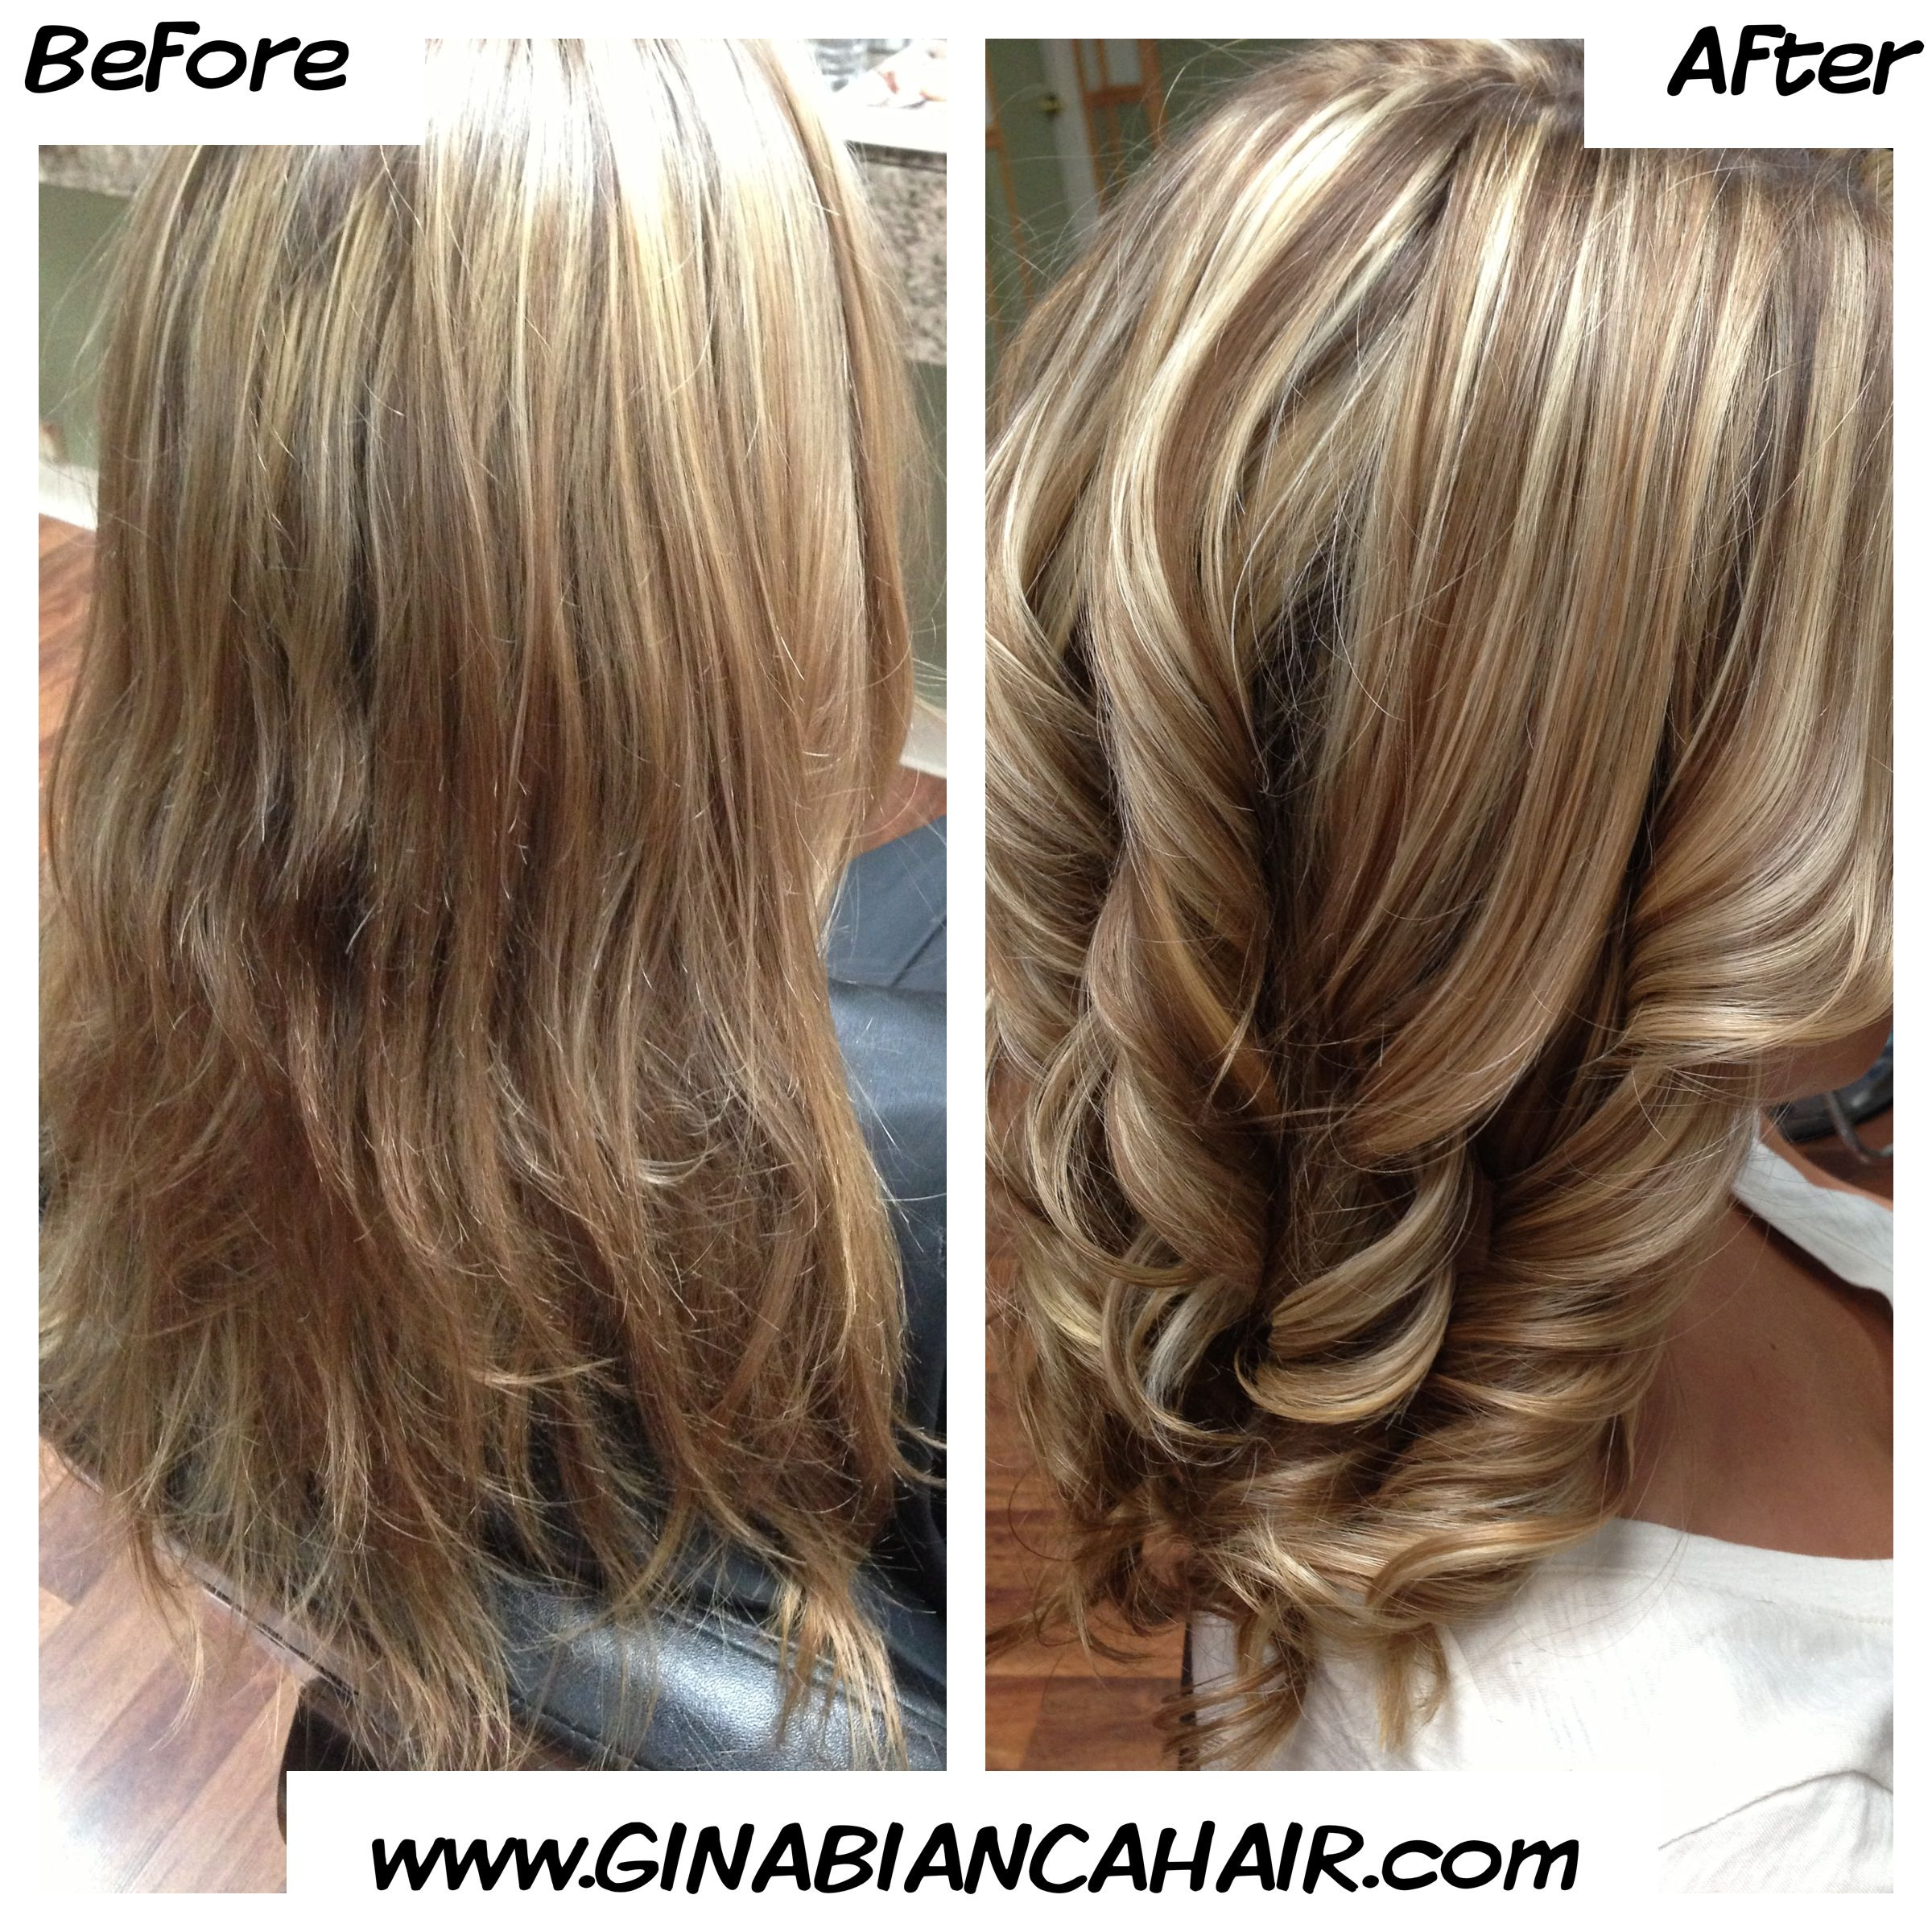 Brunette Hair Color Trends Ecaille Has A Major Head Start In The